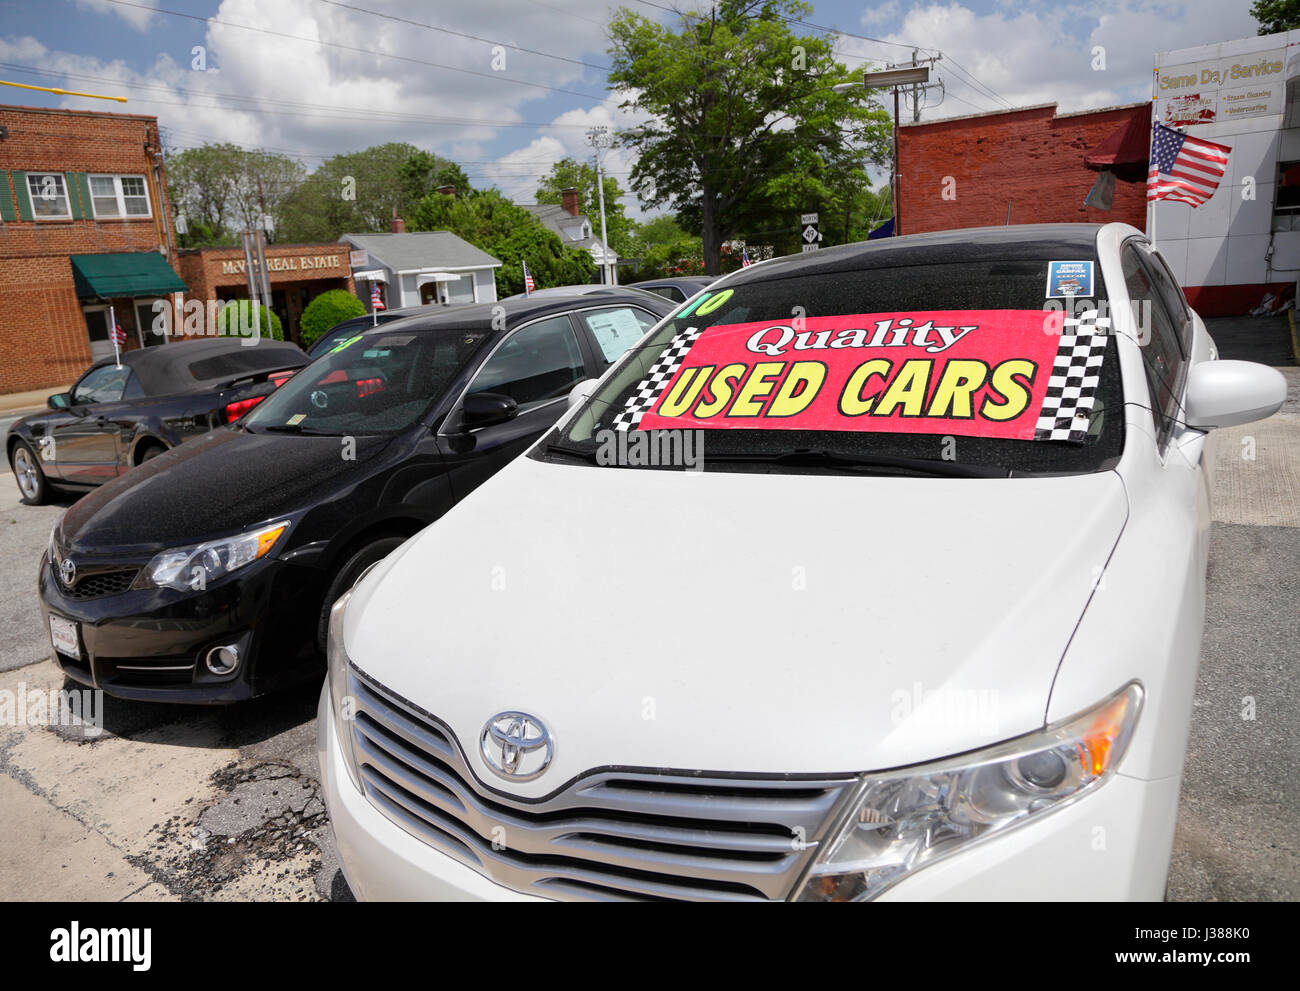 Used cars for sale, North Carolina, USA Stock Photo, Royalty Free ...